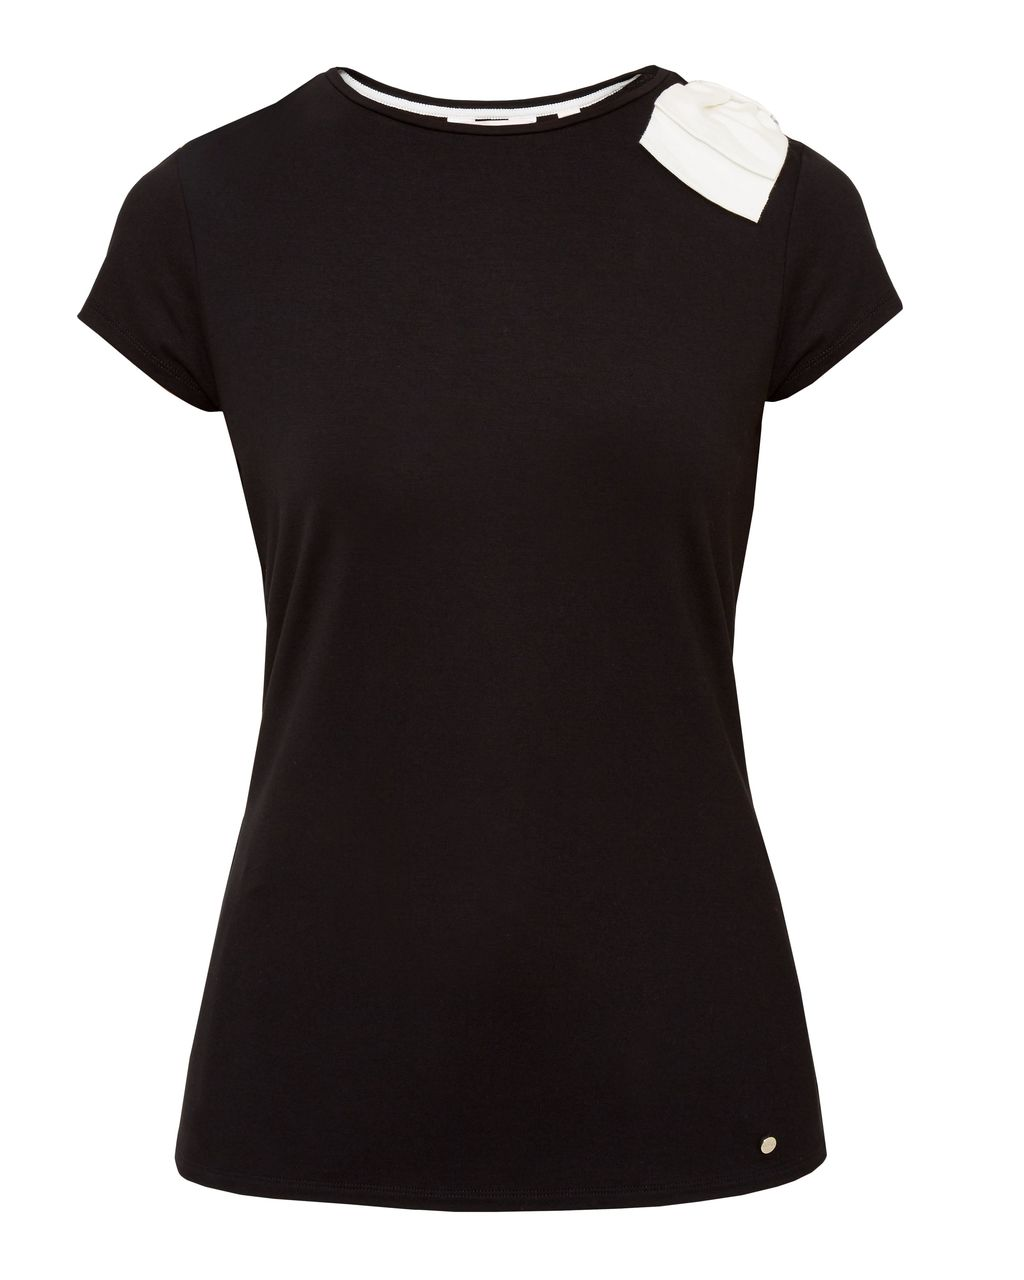 Tuline Oversized Bow T Shirt, Black - pattern: plain; style: t-shirt; secondary colour: white; predominant colour: black; occasions: casual; length: standard; fibres: viscose/rayon - stretch; fit: body skimming; neckline: crew; sleeve length: short sleeve; sleeve style: standard; pattern type: fabric; texture group: jersey - stretchy/drapey; embellishment: bow; multicoloured: multicoloured; season: s/s 2016; wardrobe: highlight